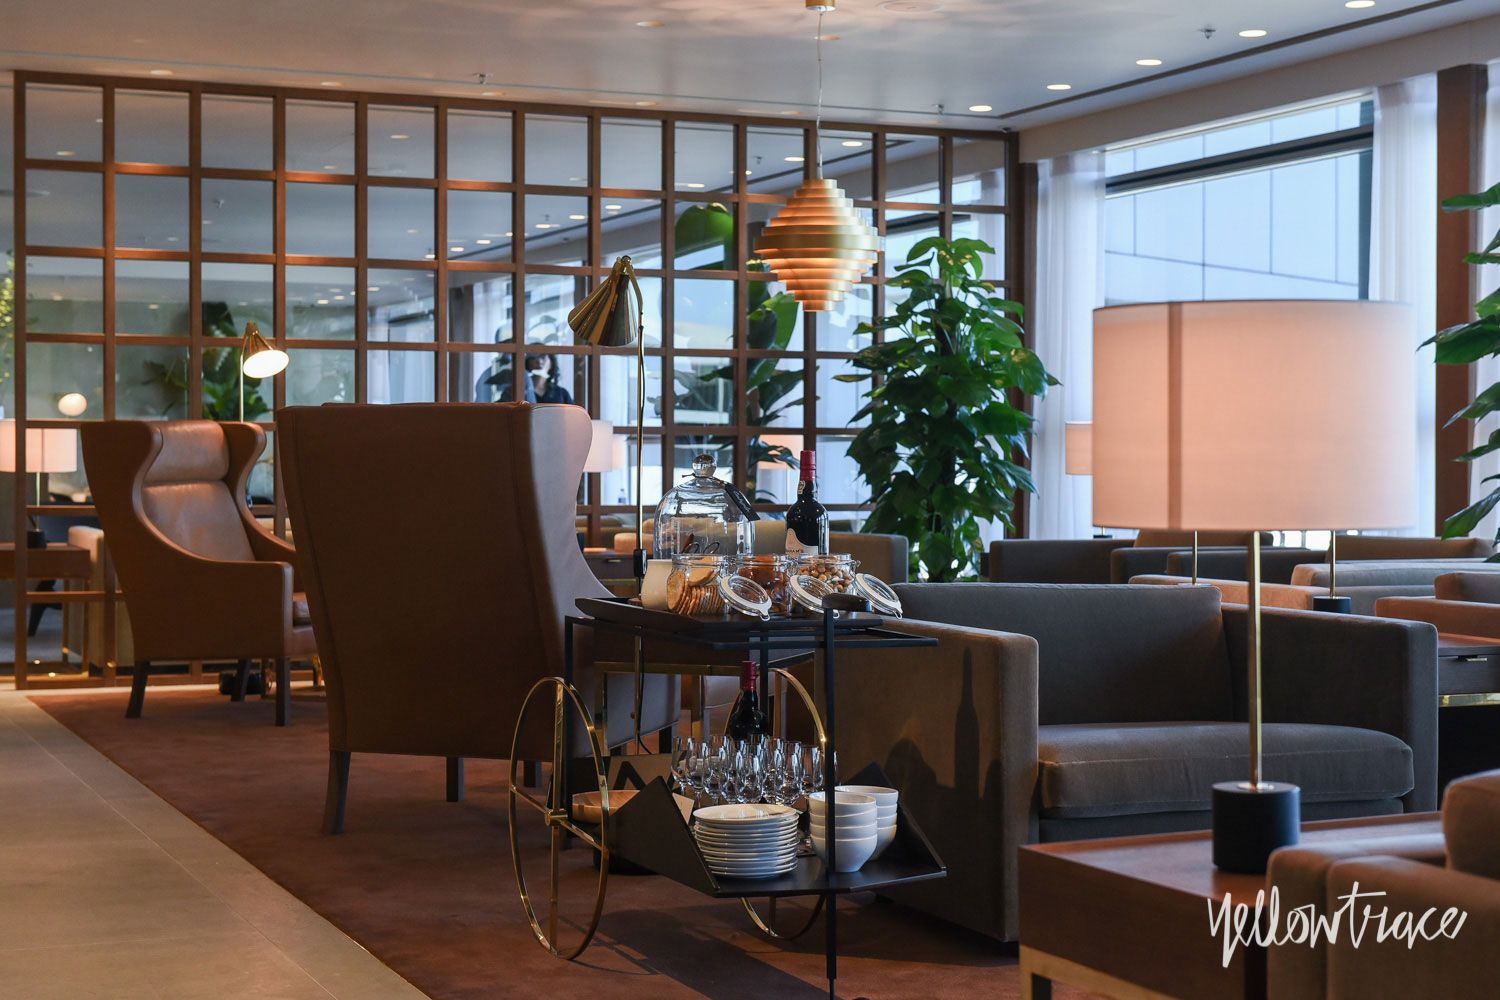 Cathay Pacifics The Pier First Class Lounge In Hong Kong